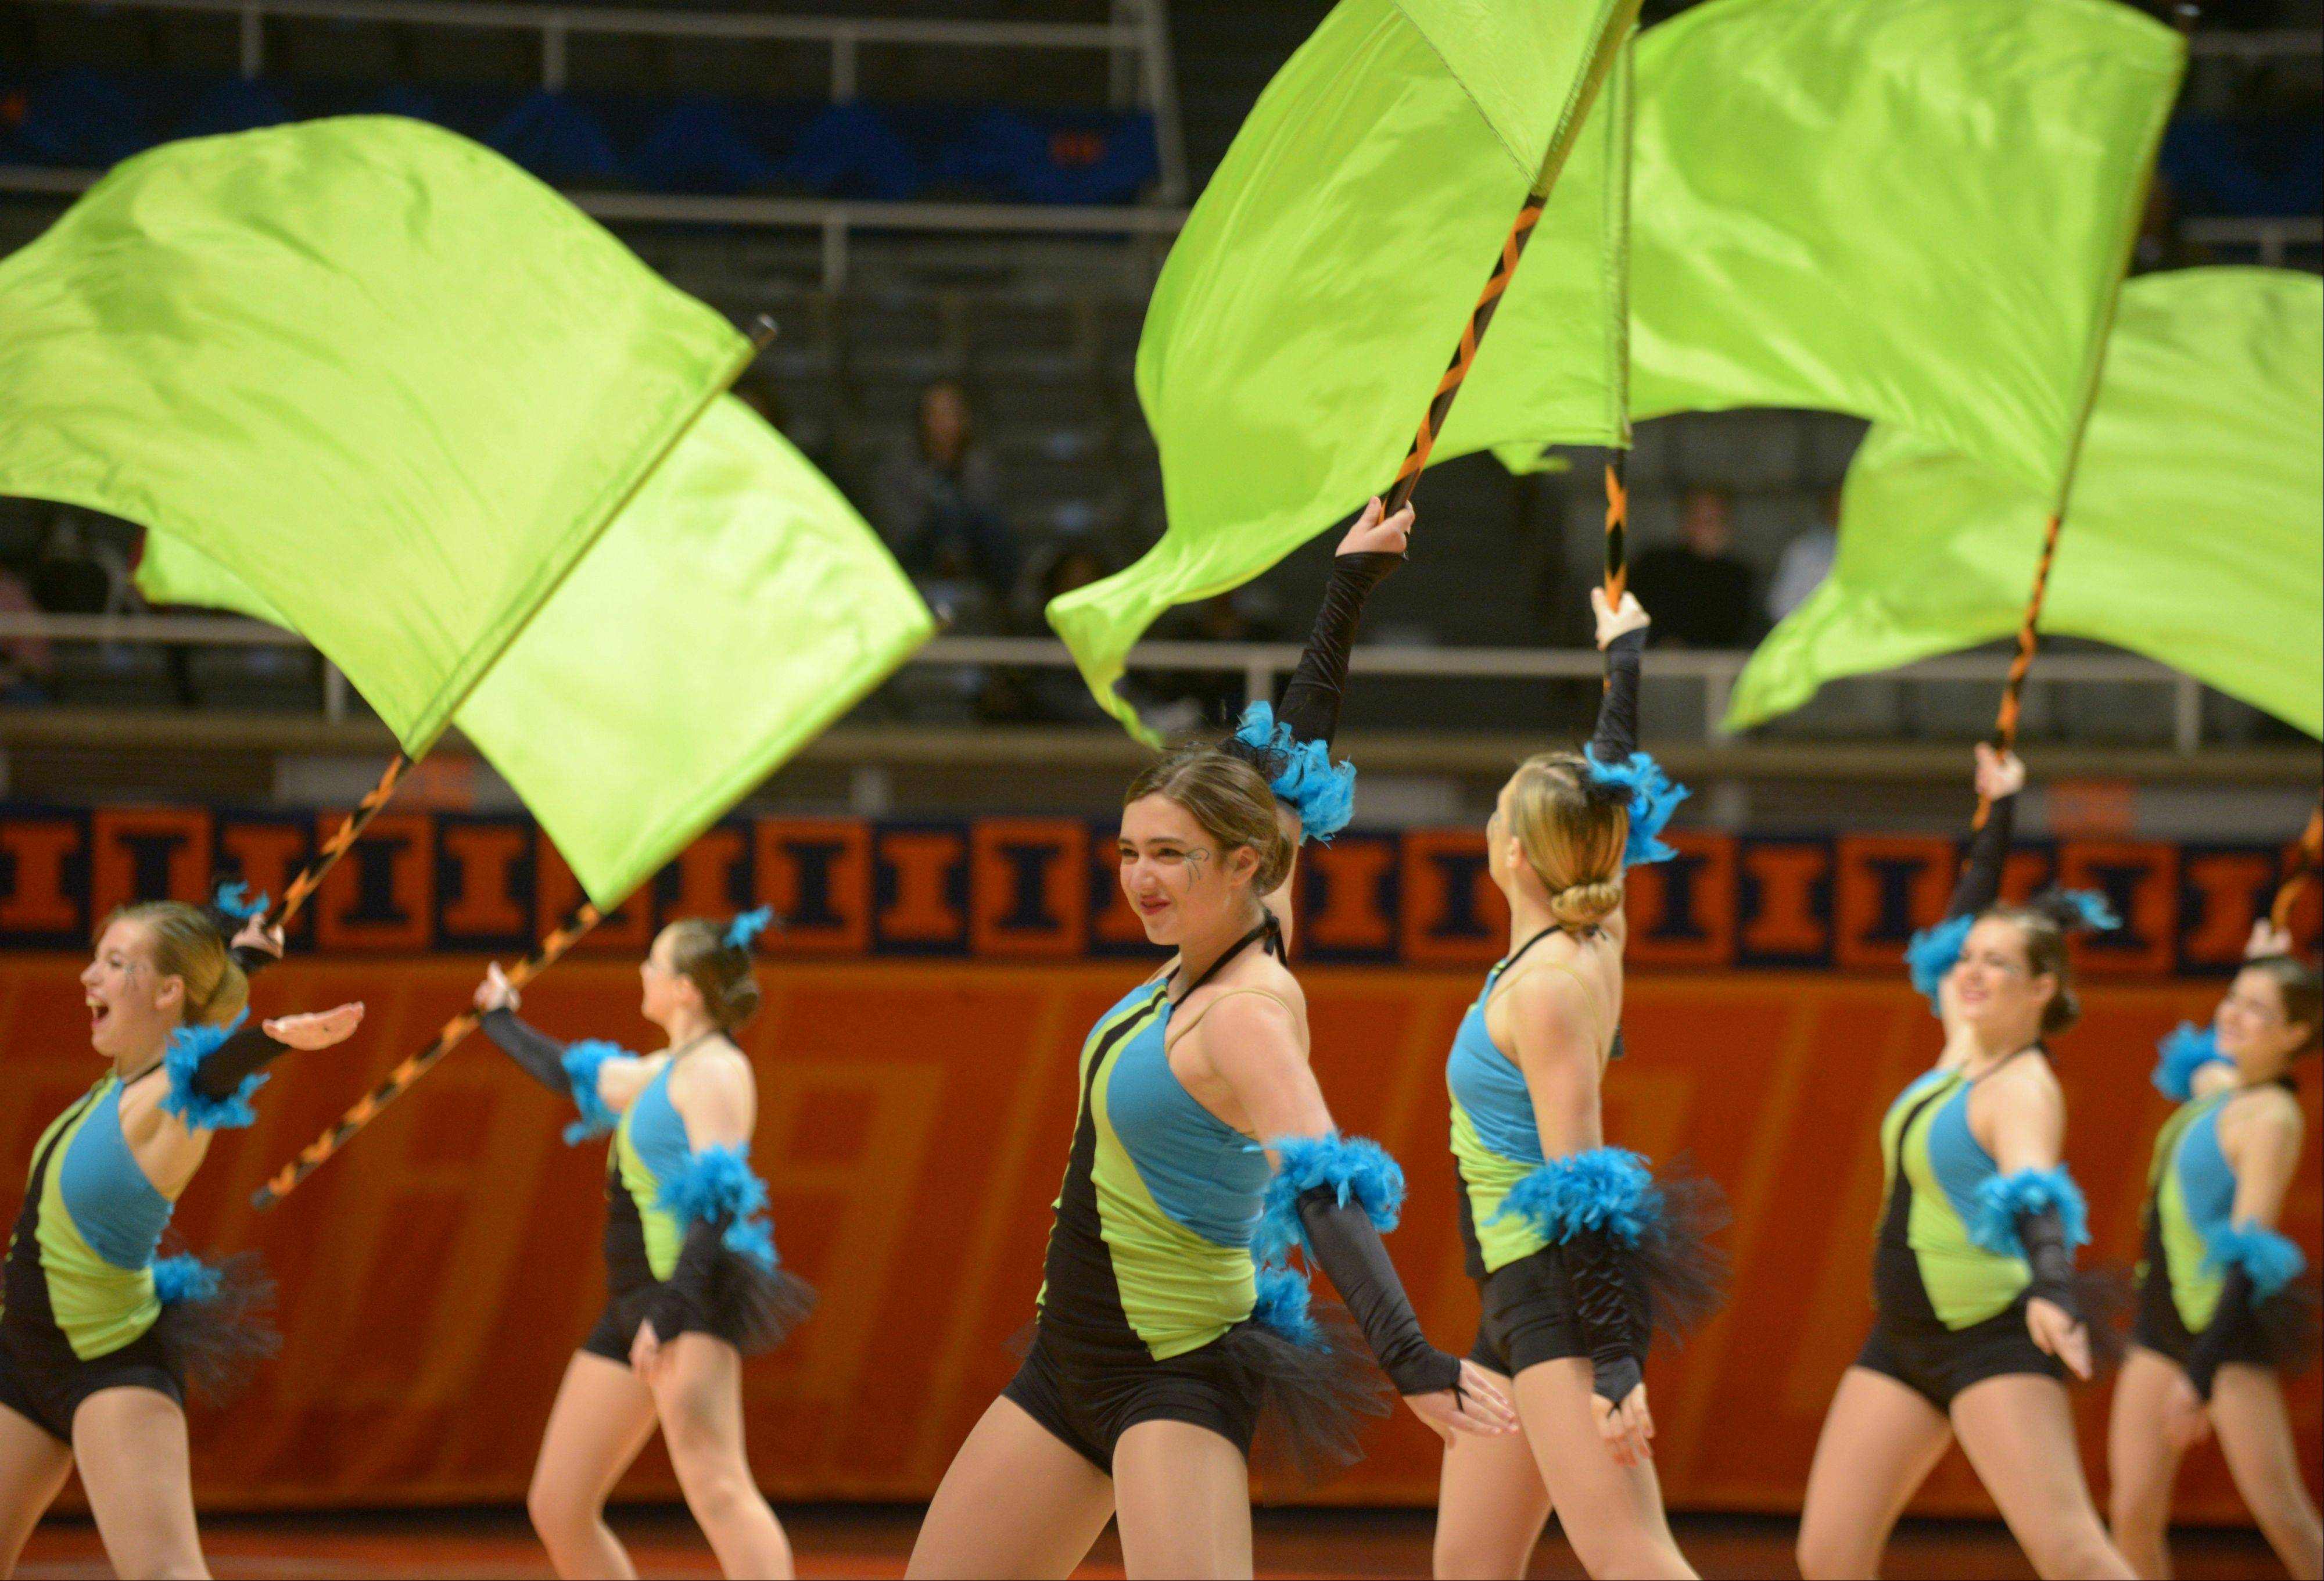 The Lake Zurich High School team, in their first-place Tall Flags routine.